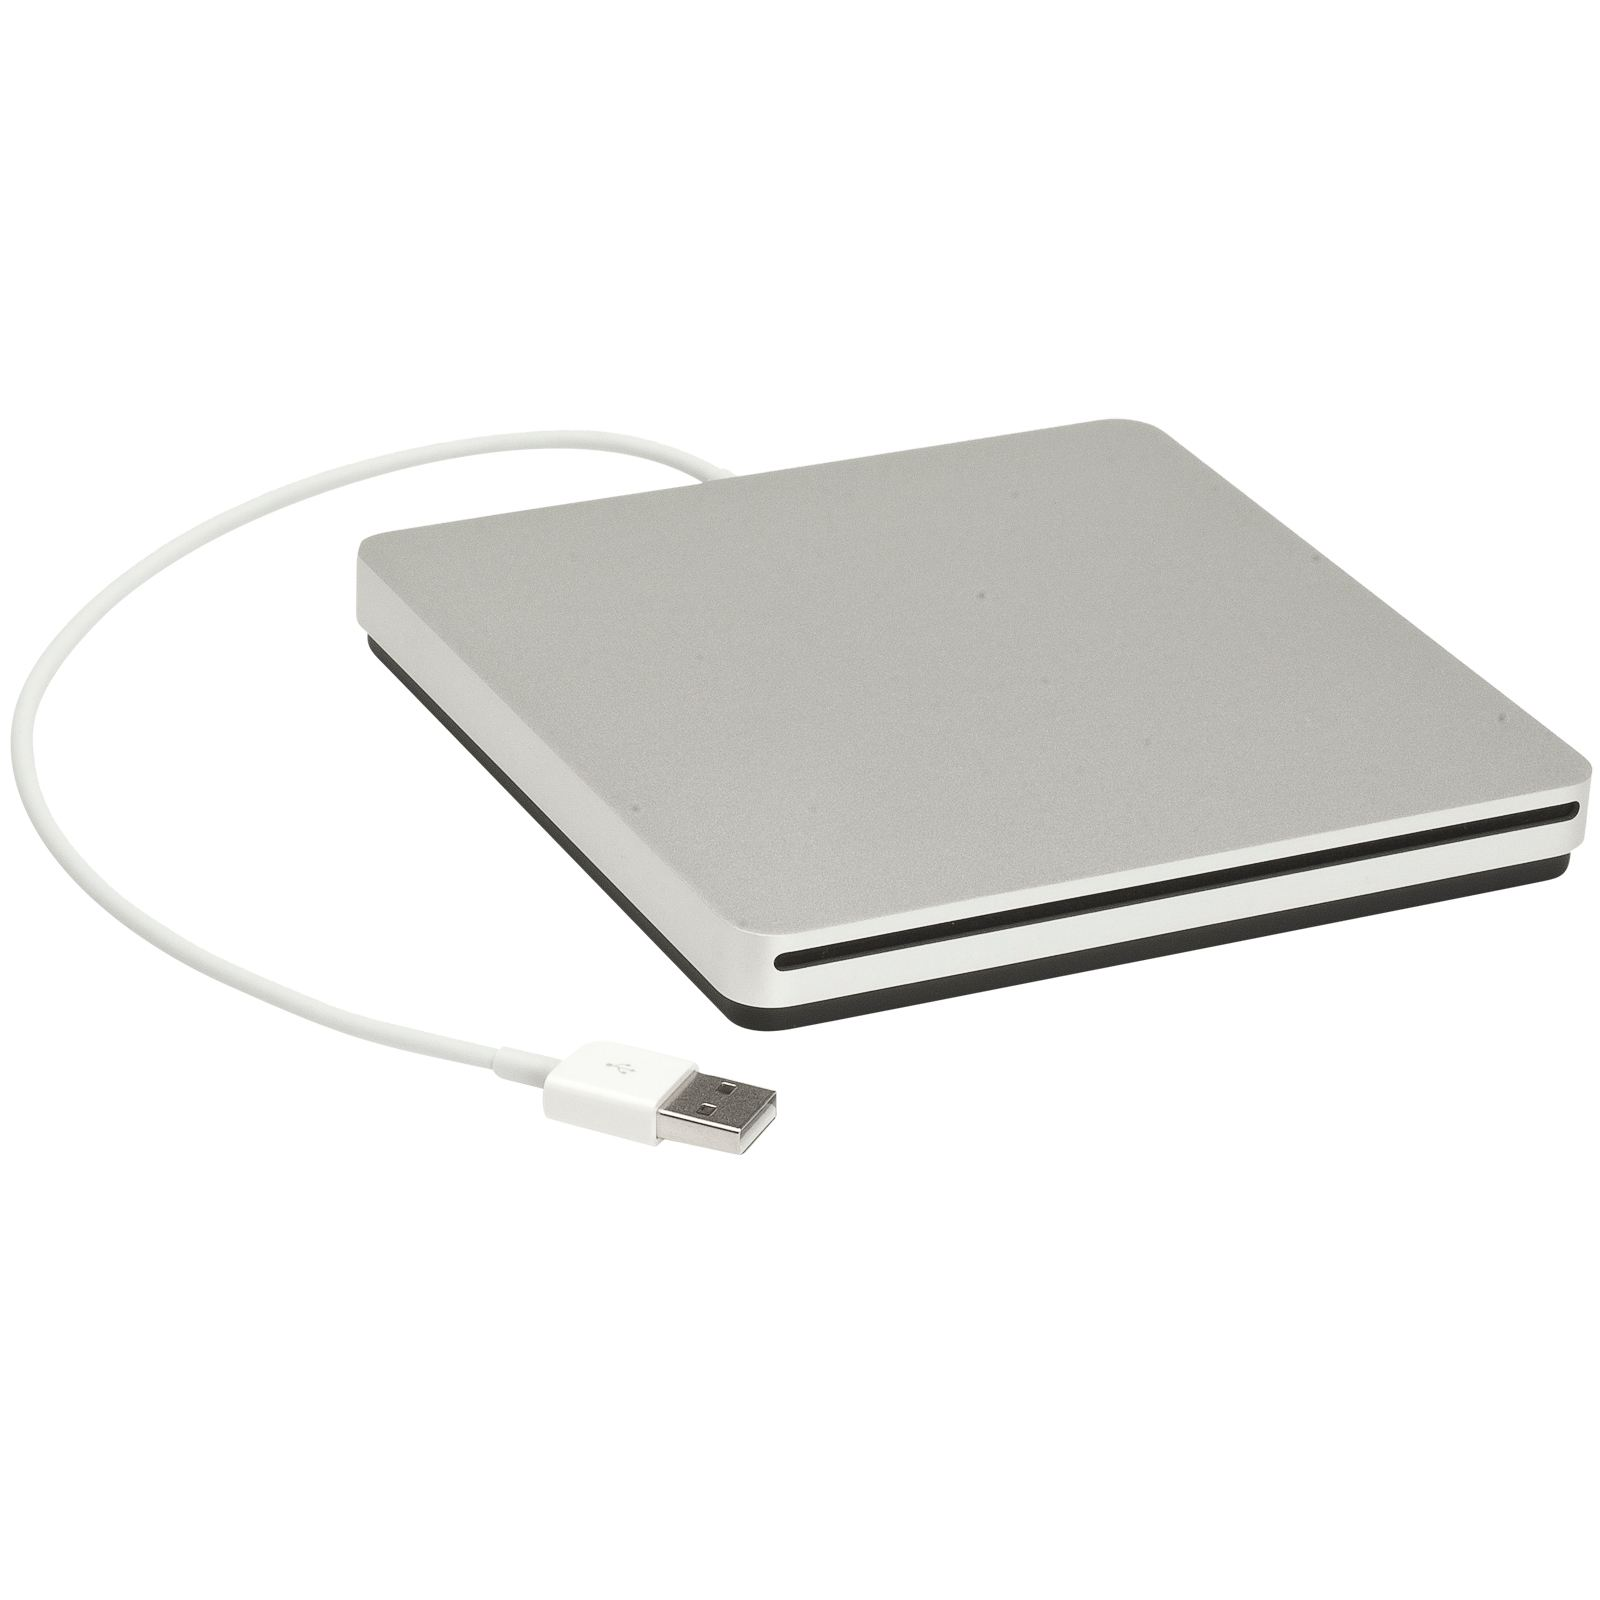 Apple SuperDrive External DVD Drive